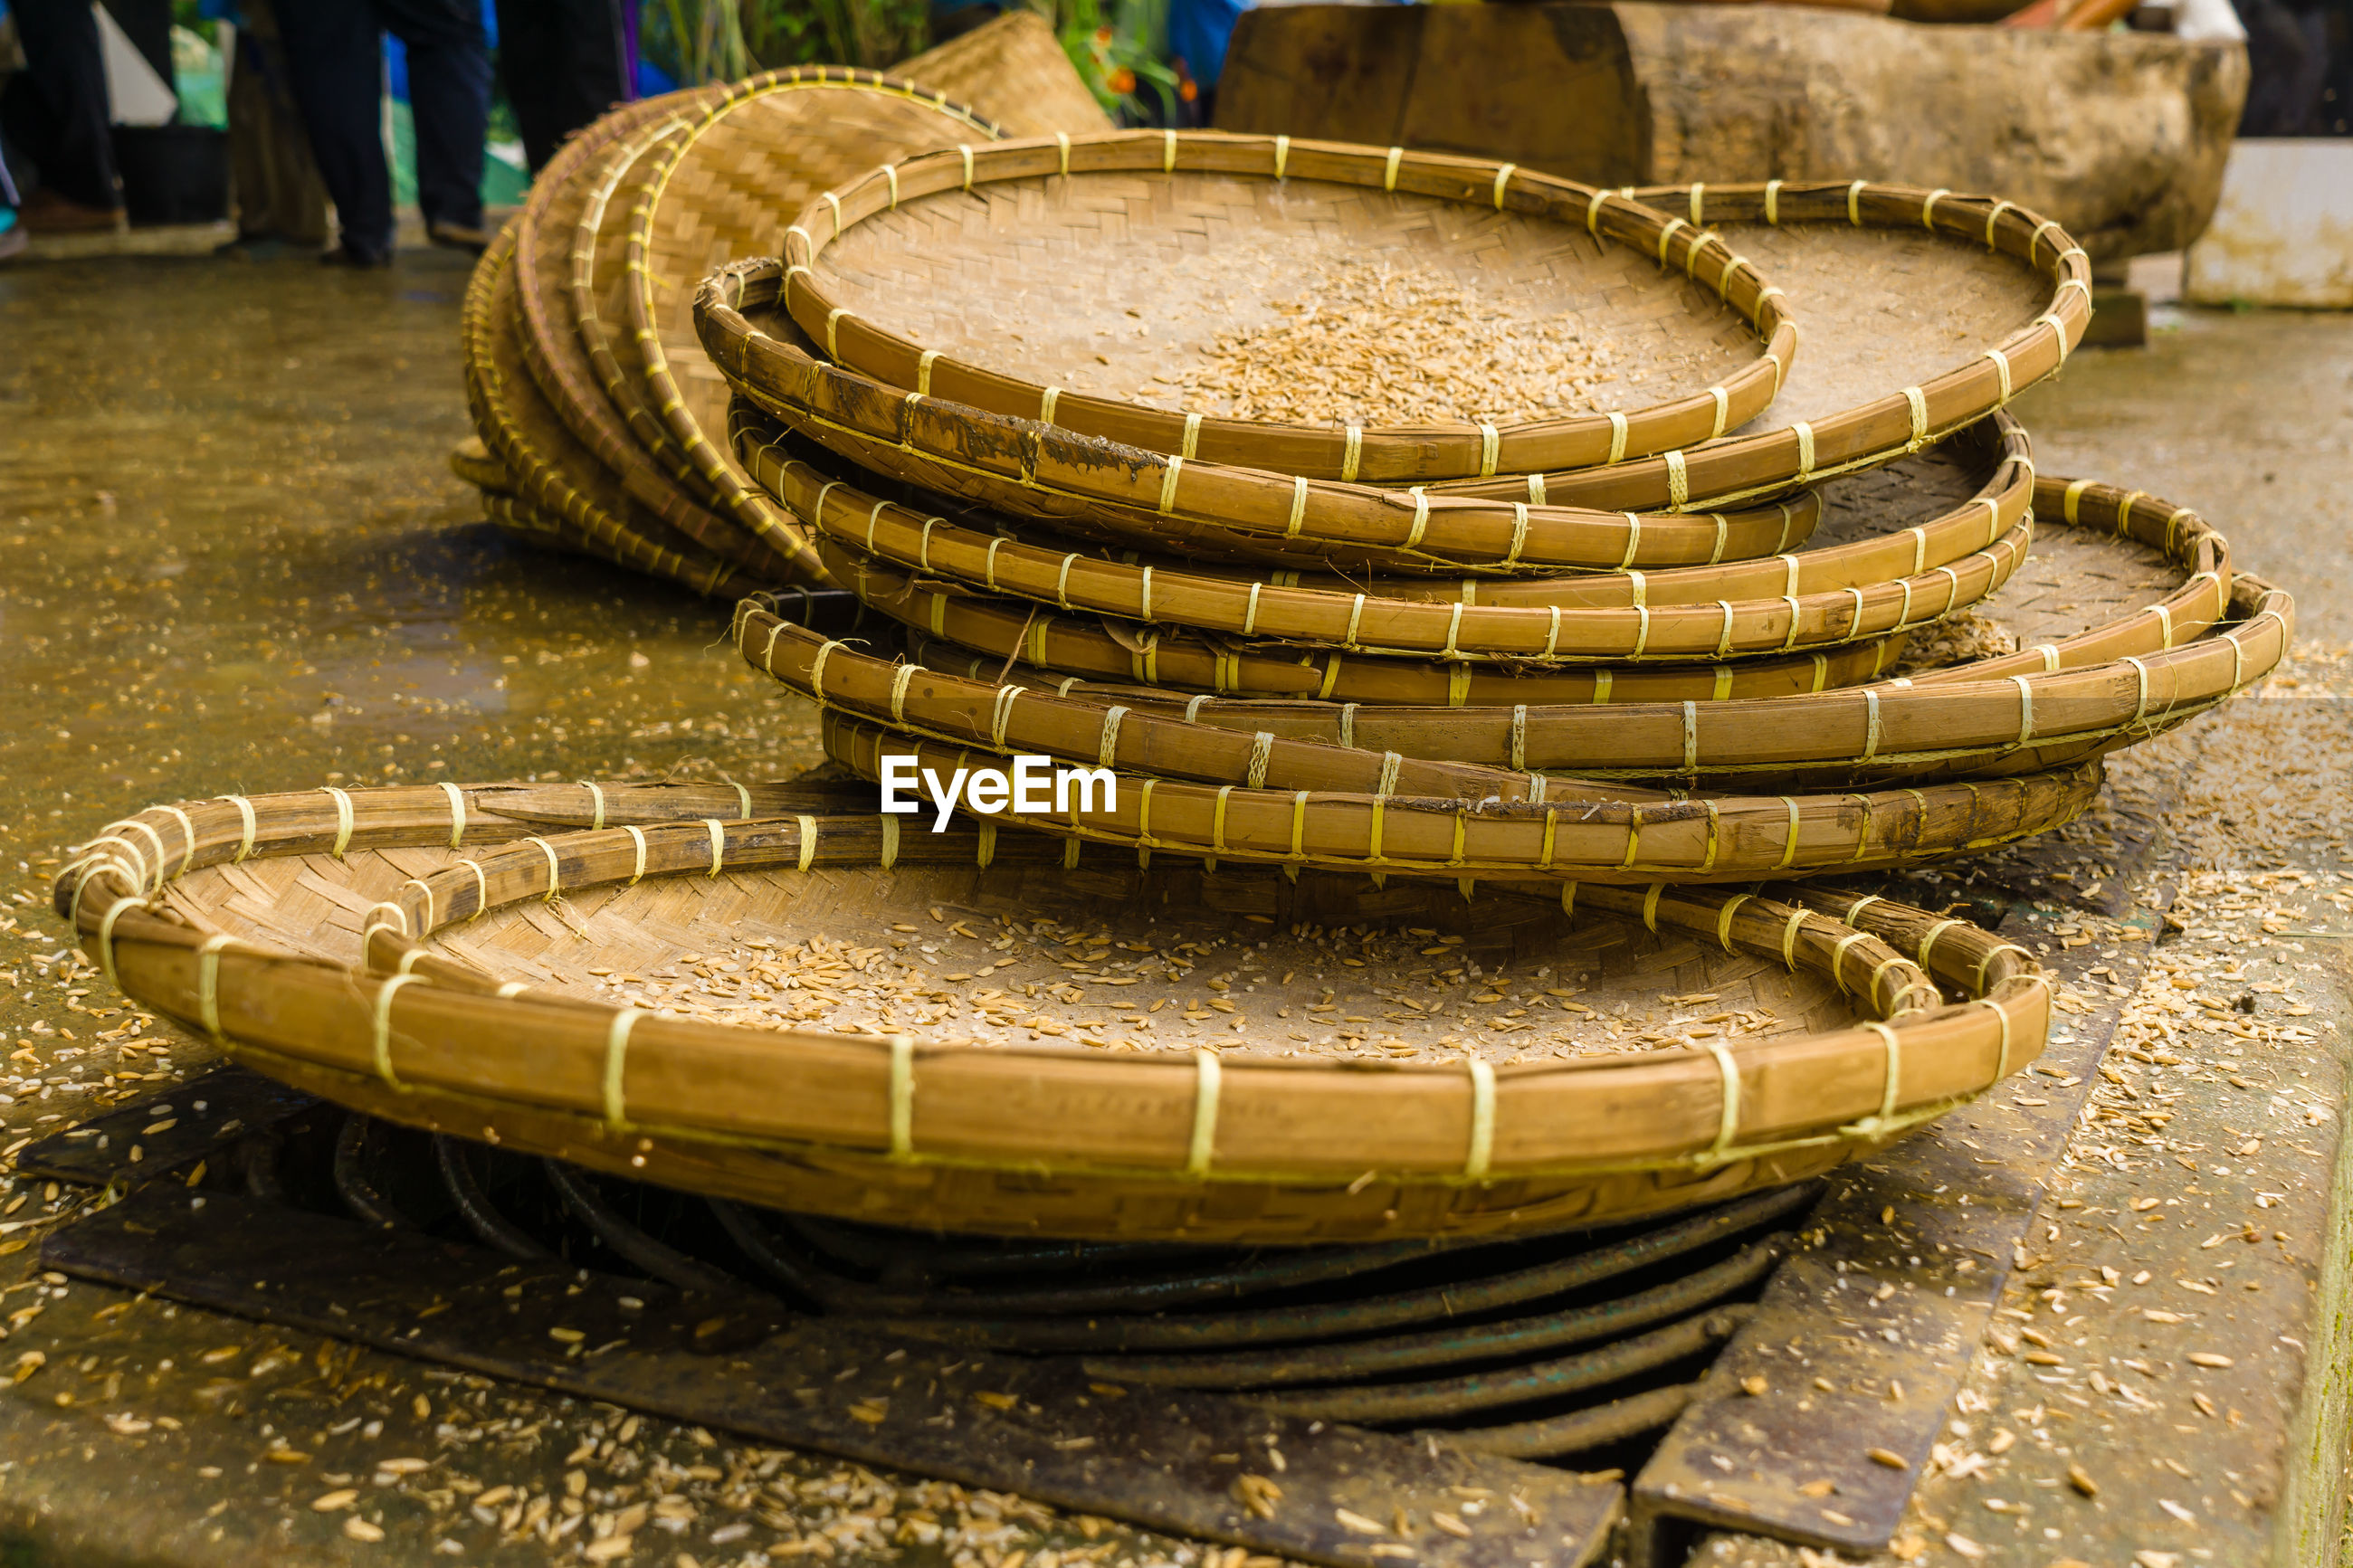 The goods from woven bamboo that circle looks for separates drying rice and raw rice